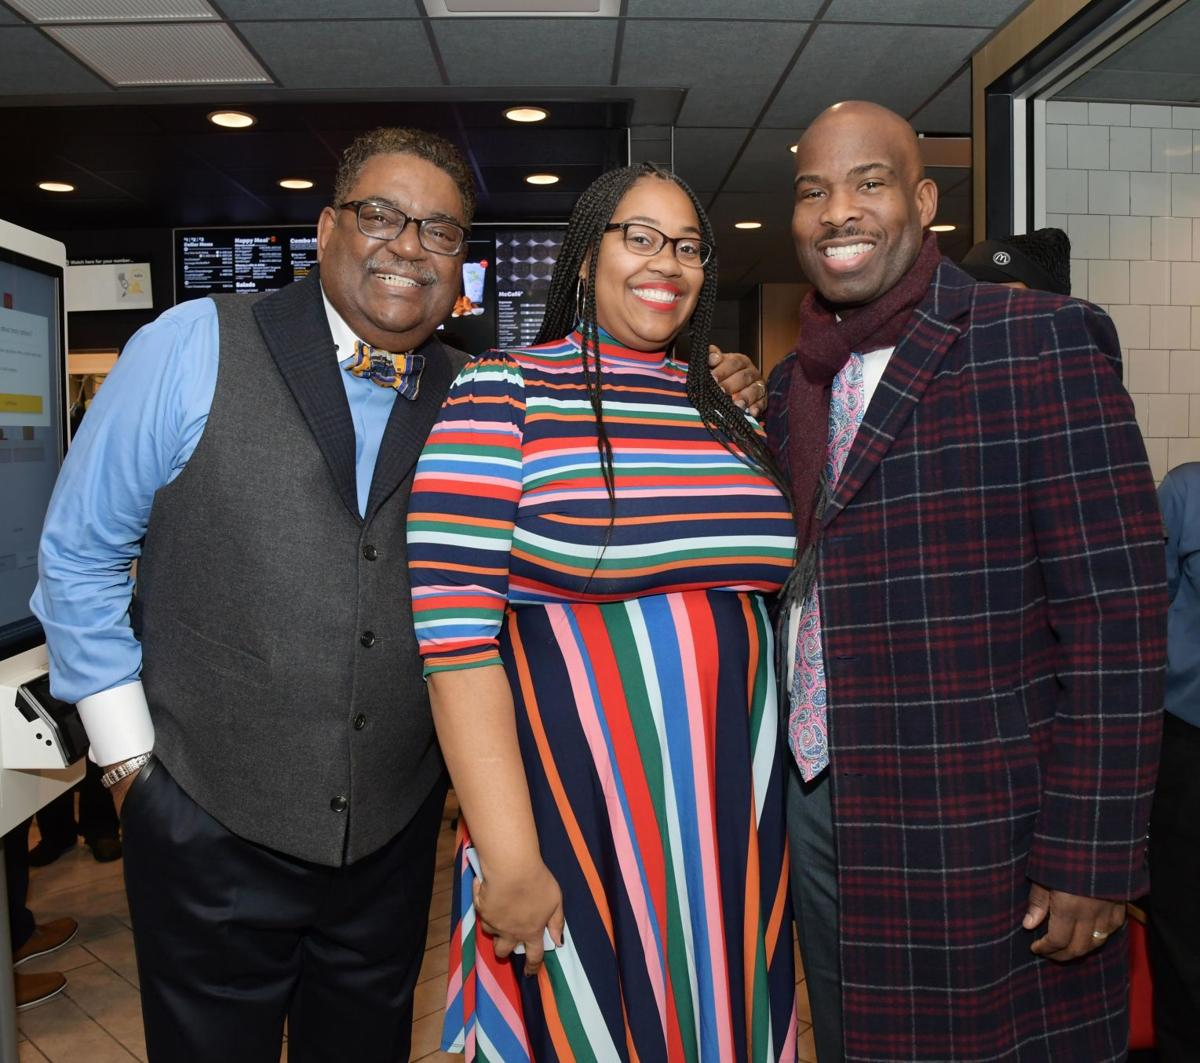 Dawkins reopen McDonald's with a community flavor